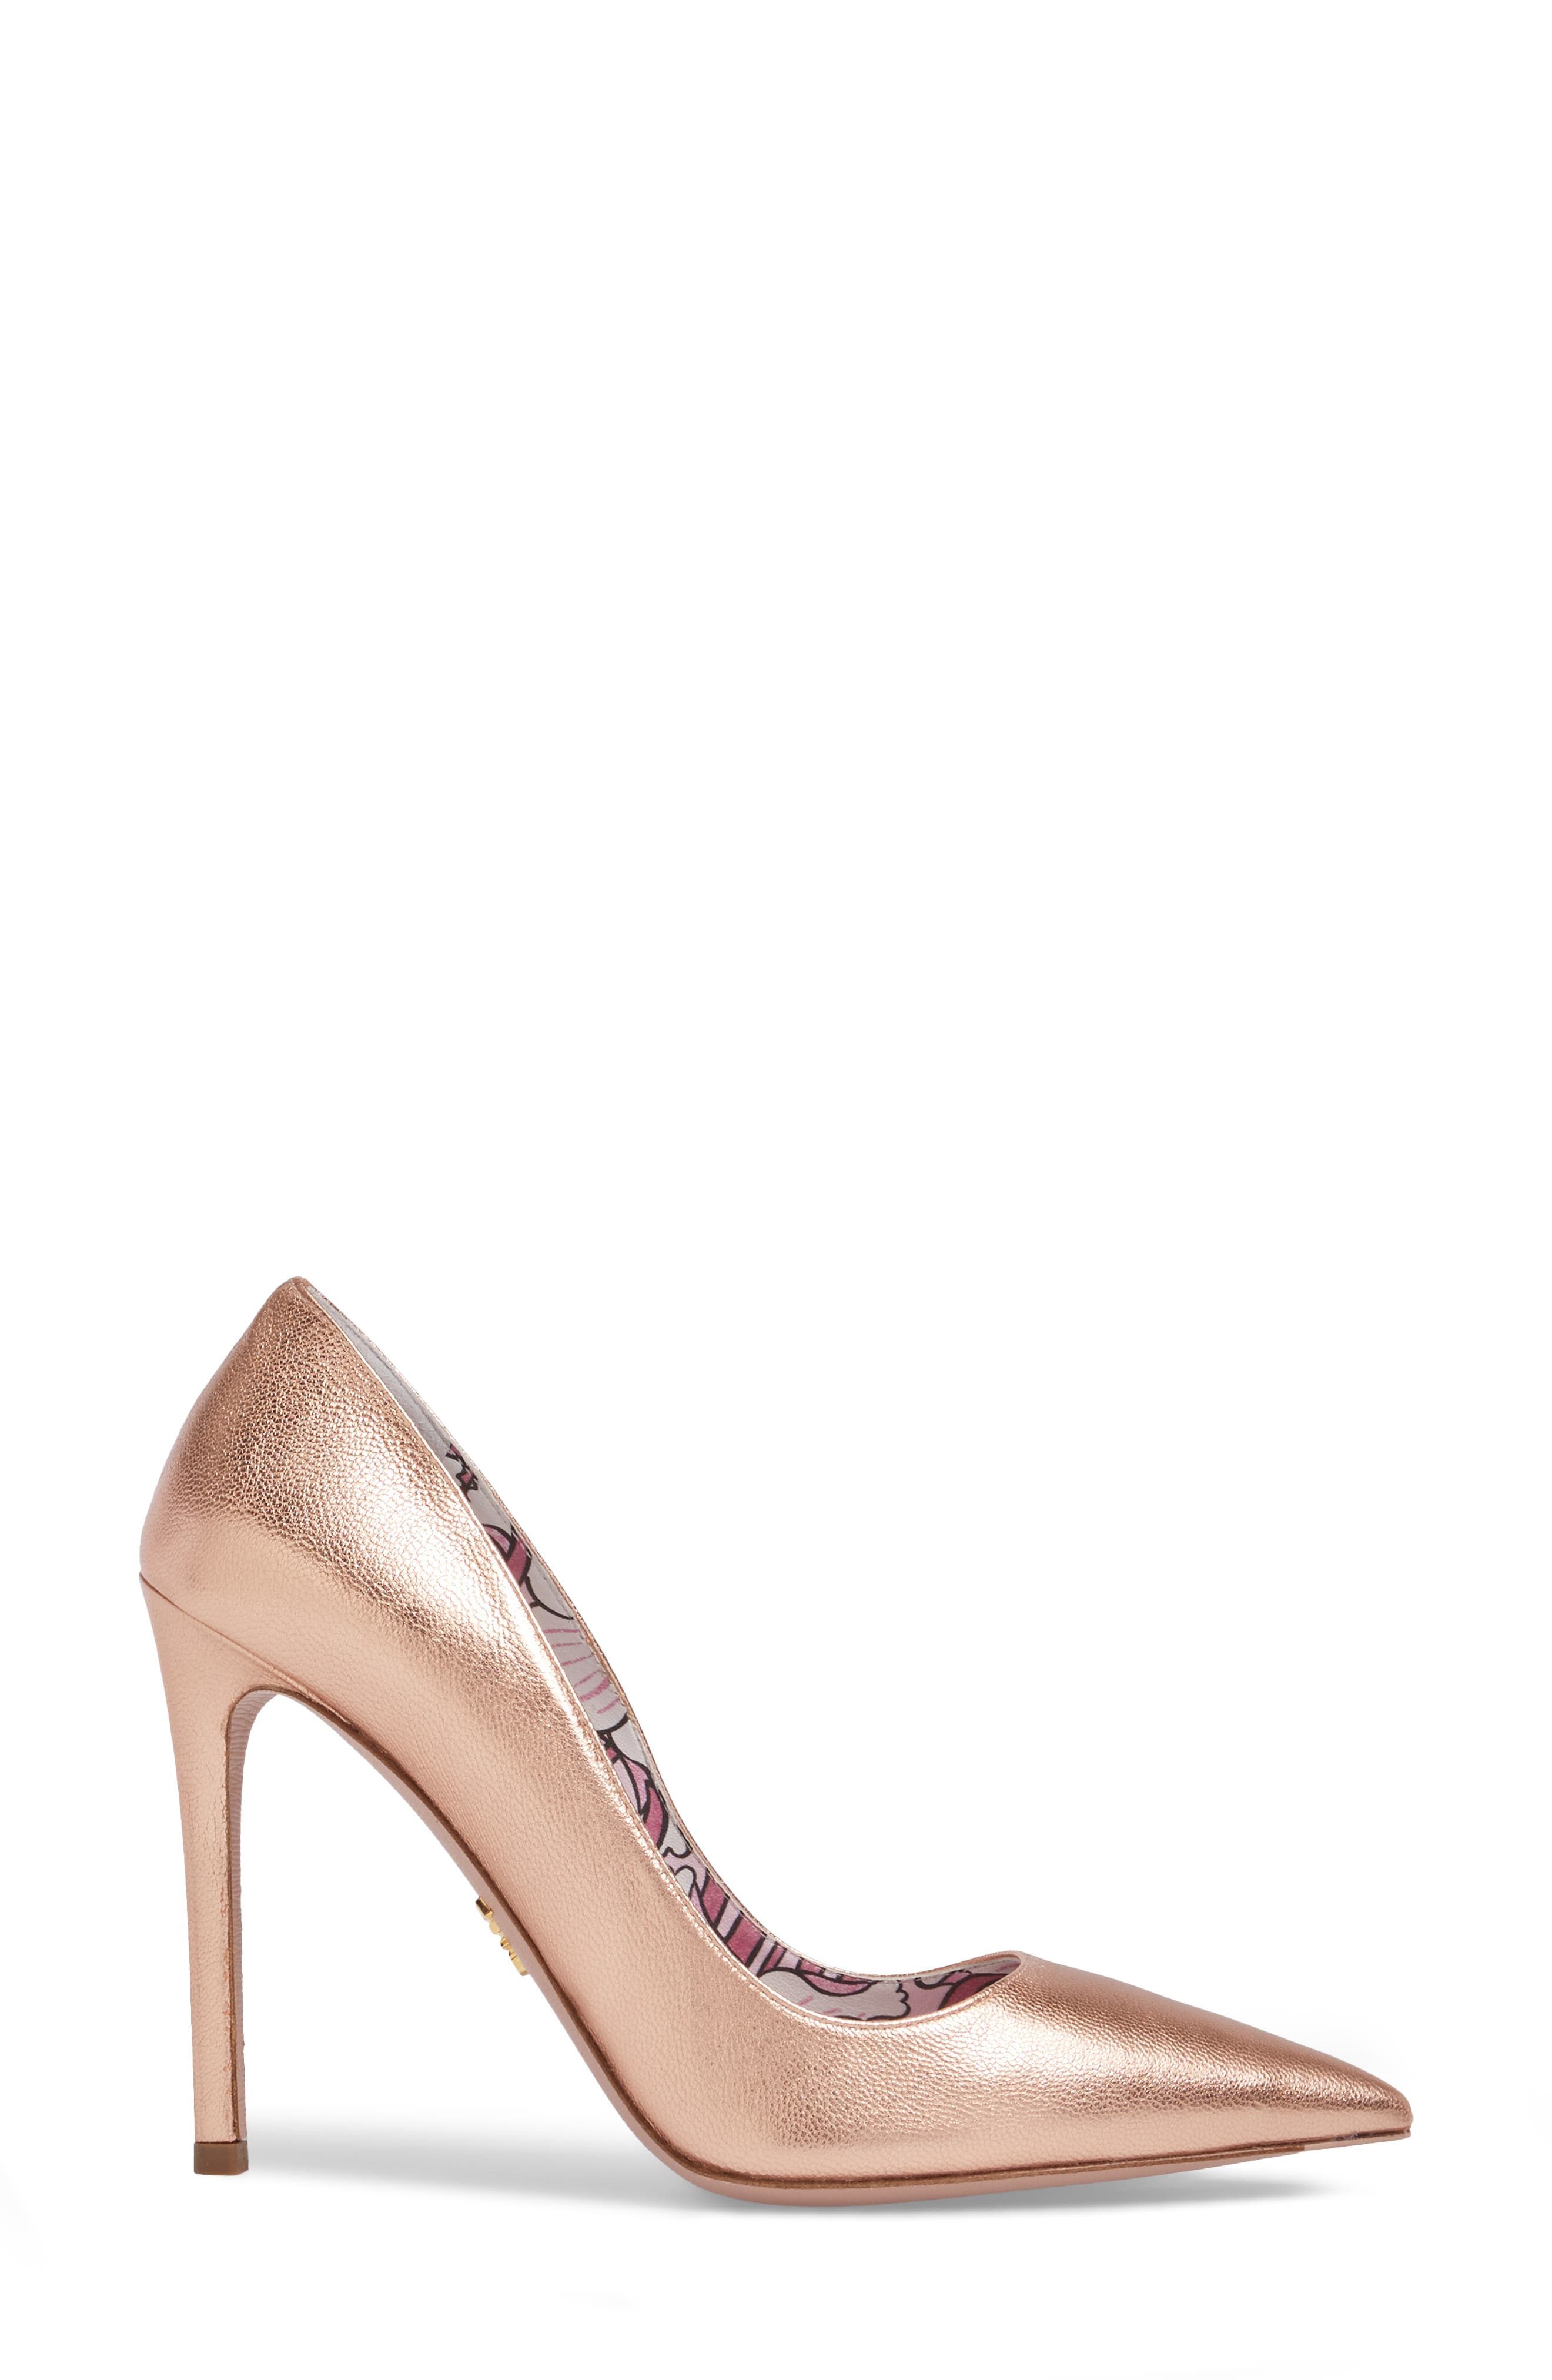 Alternate Image 3  - Prada Pointy Toe Pump (Women)